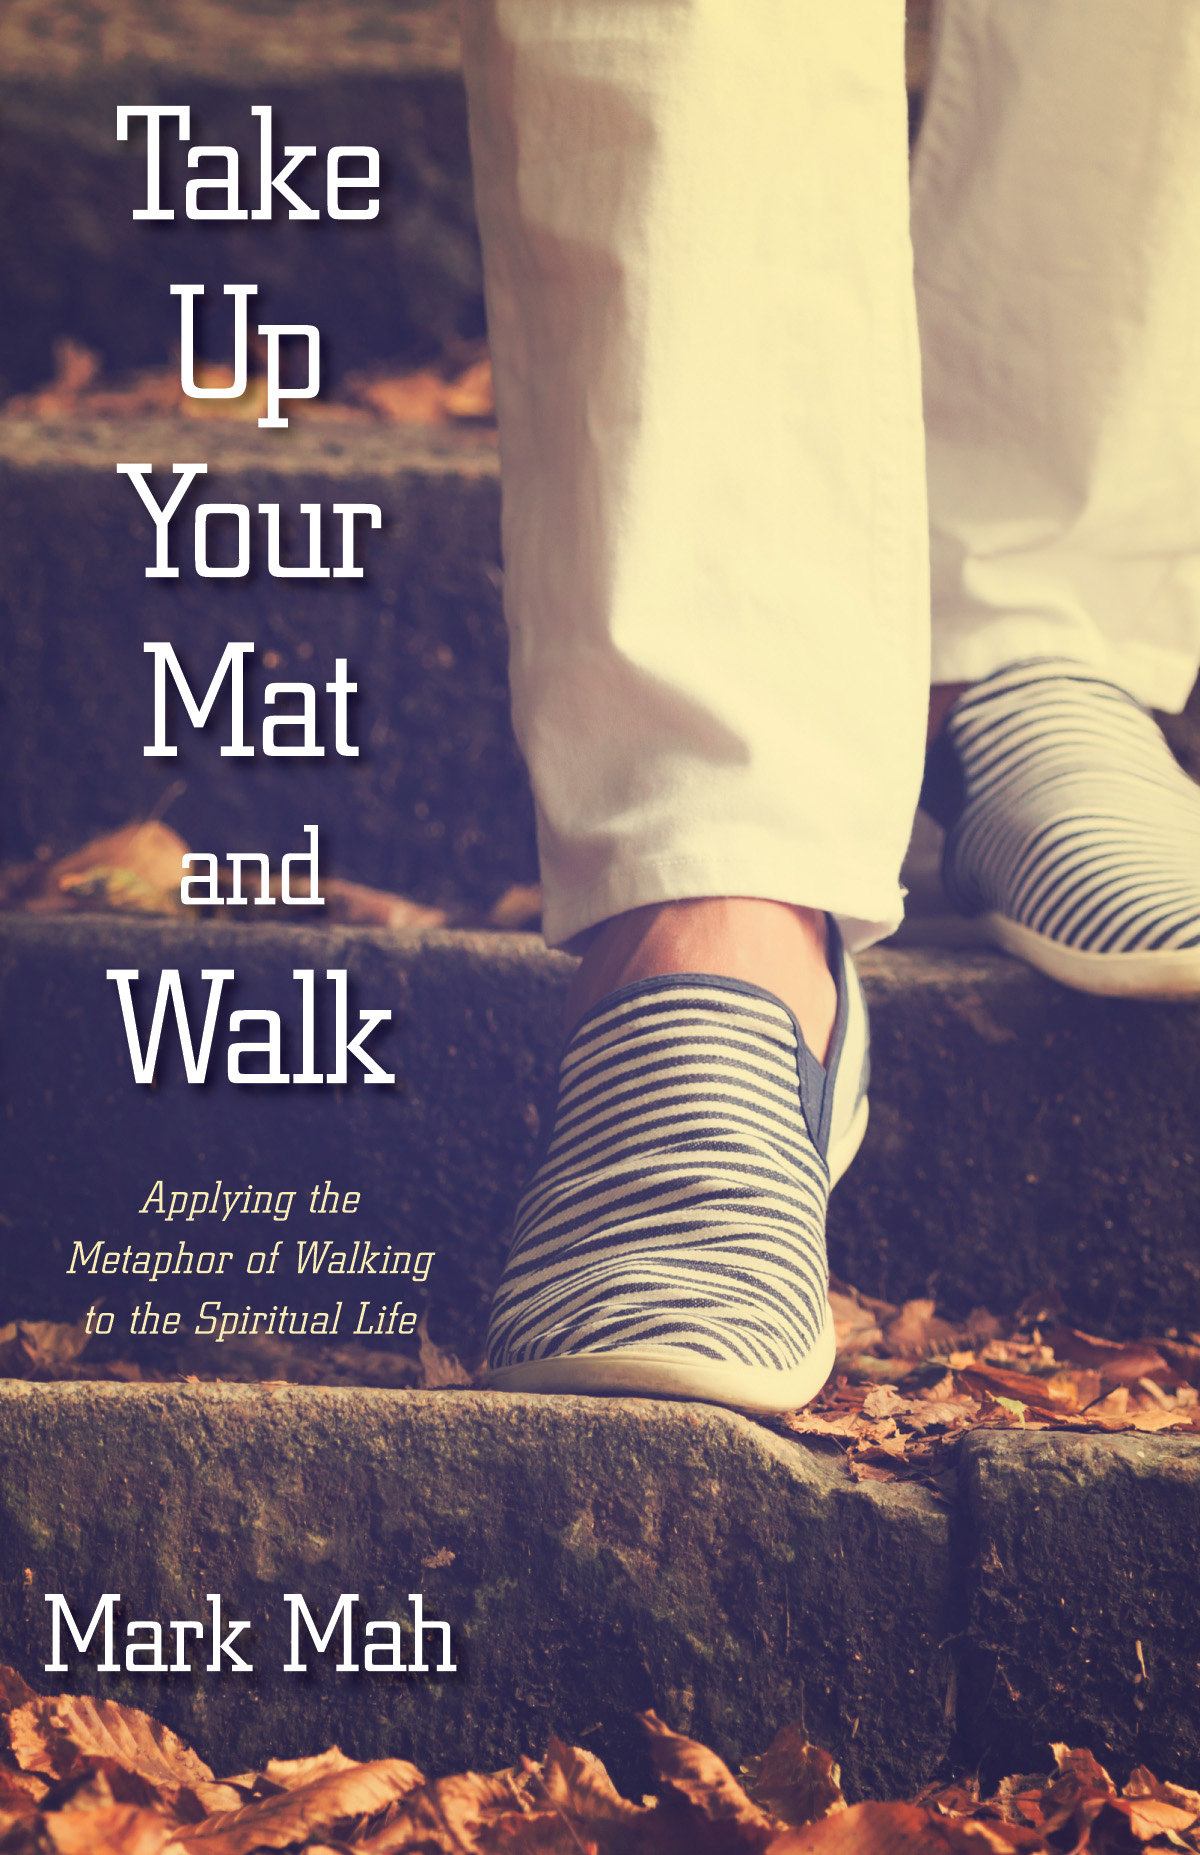 Take Up Your Mat And Walk Morning Star Publishing